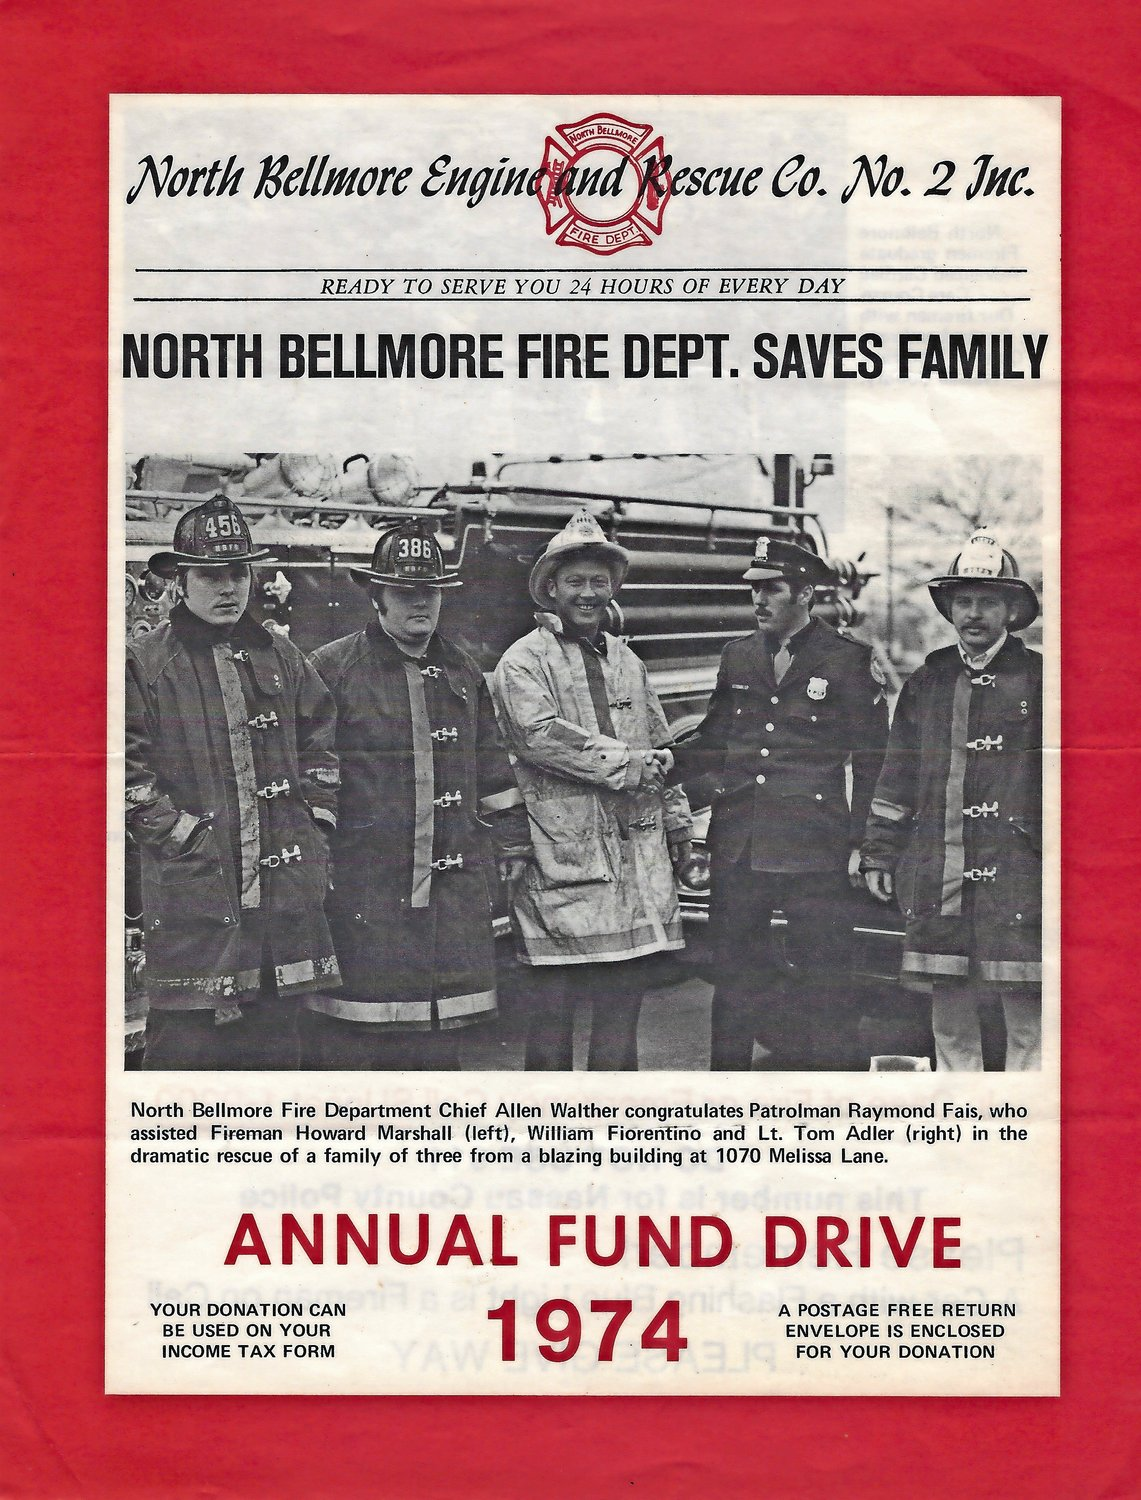 A newsletter from 1974 shows Walther, center, congratulating patrolman Raymond Fais, who helped firefighters Howard Marshall, far left, William Fiorentino and Tom Adler save a family from a fire.